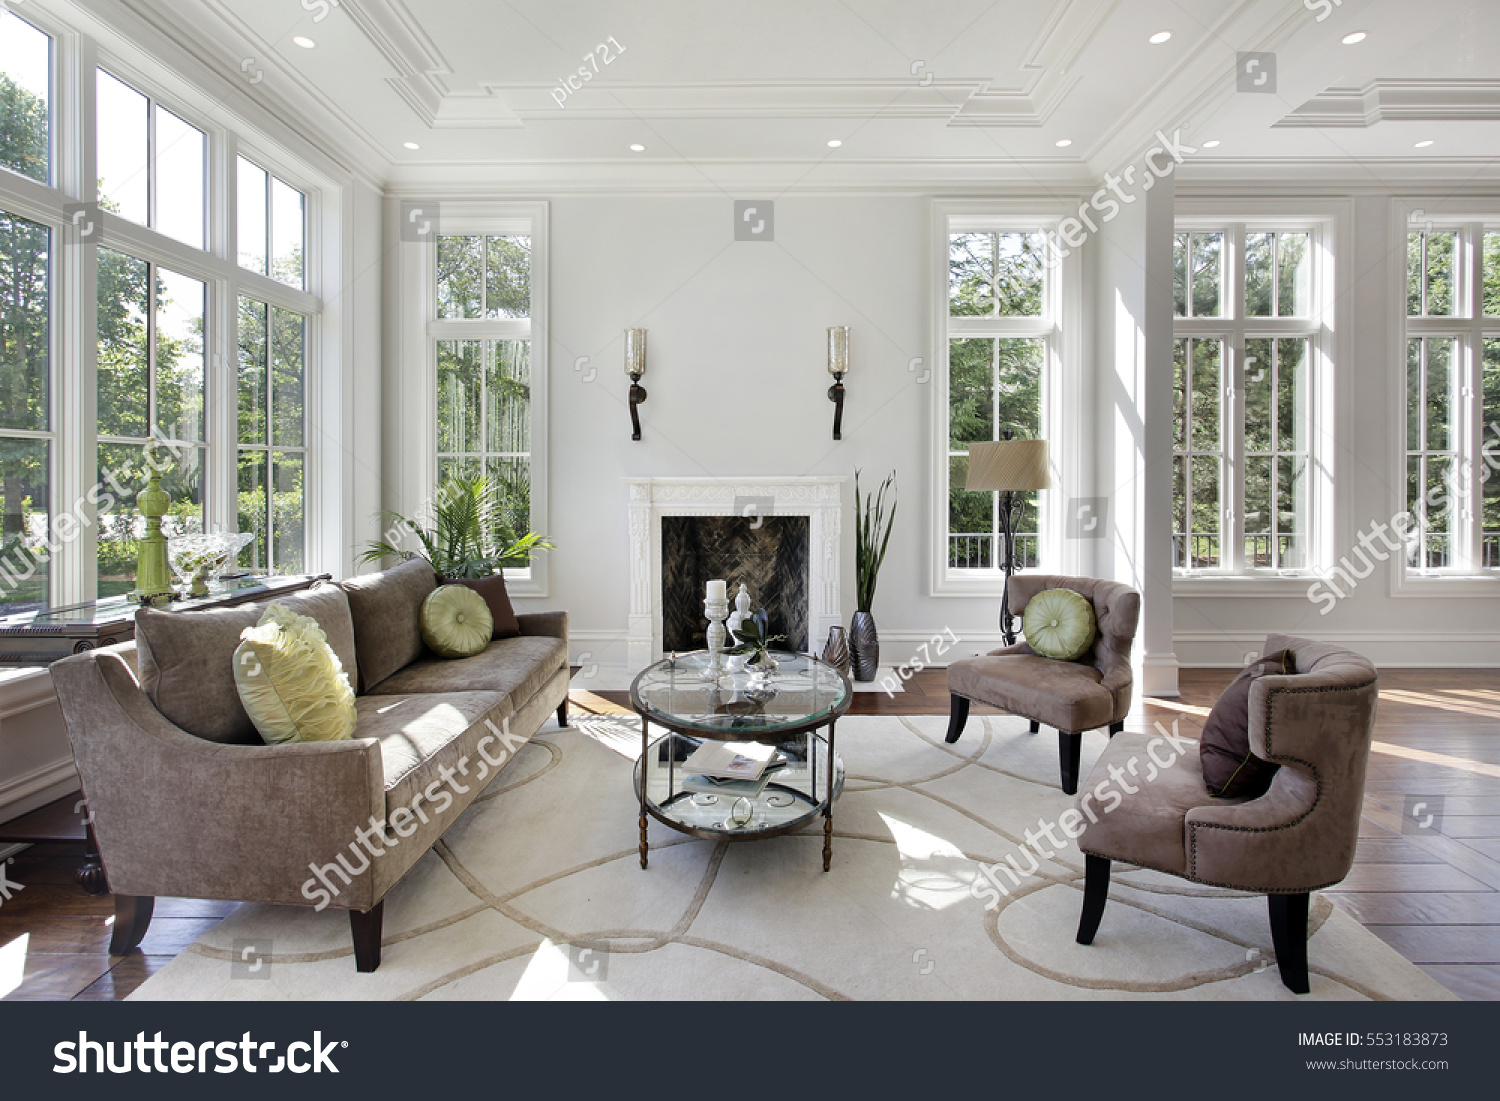 Living Room Luxury Home Fireplace Stock Photo 553183873